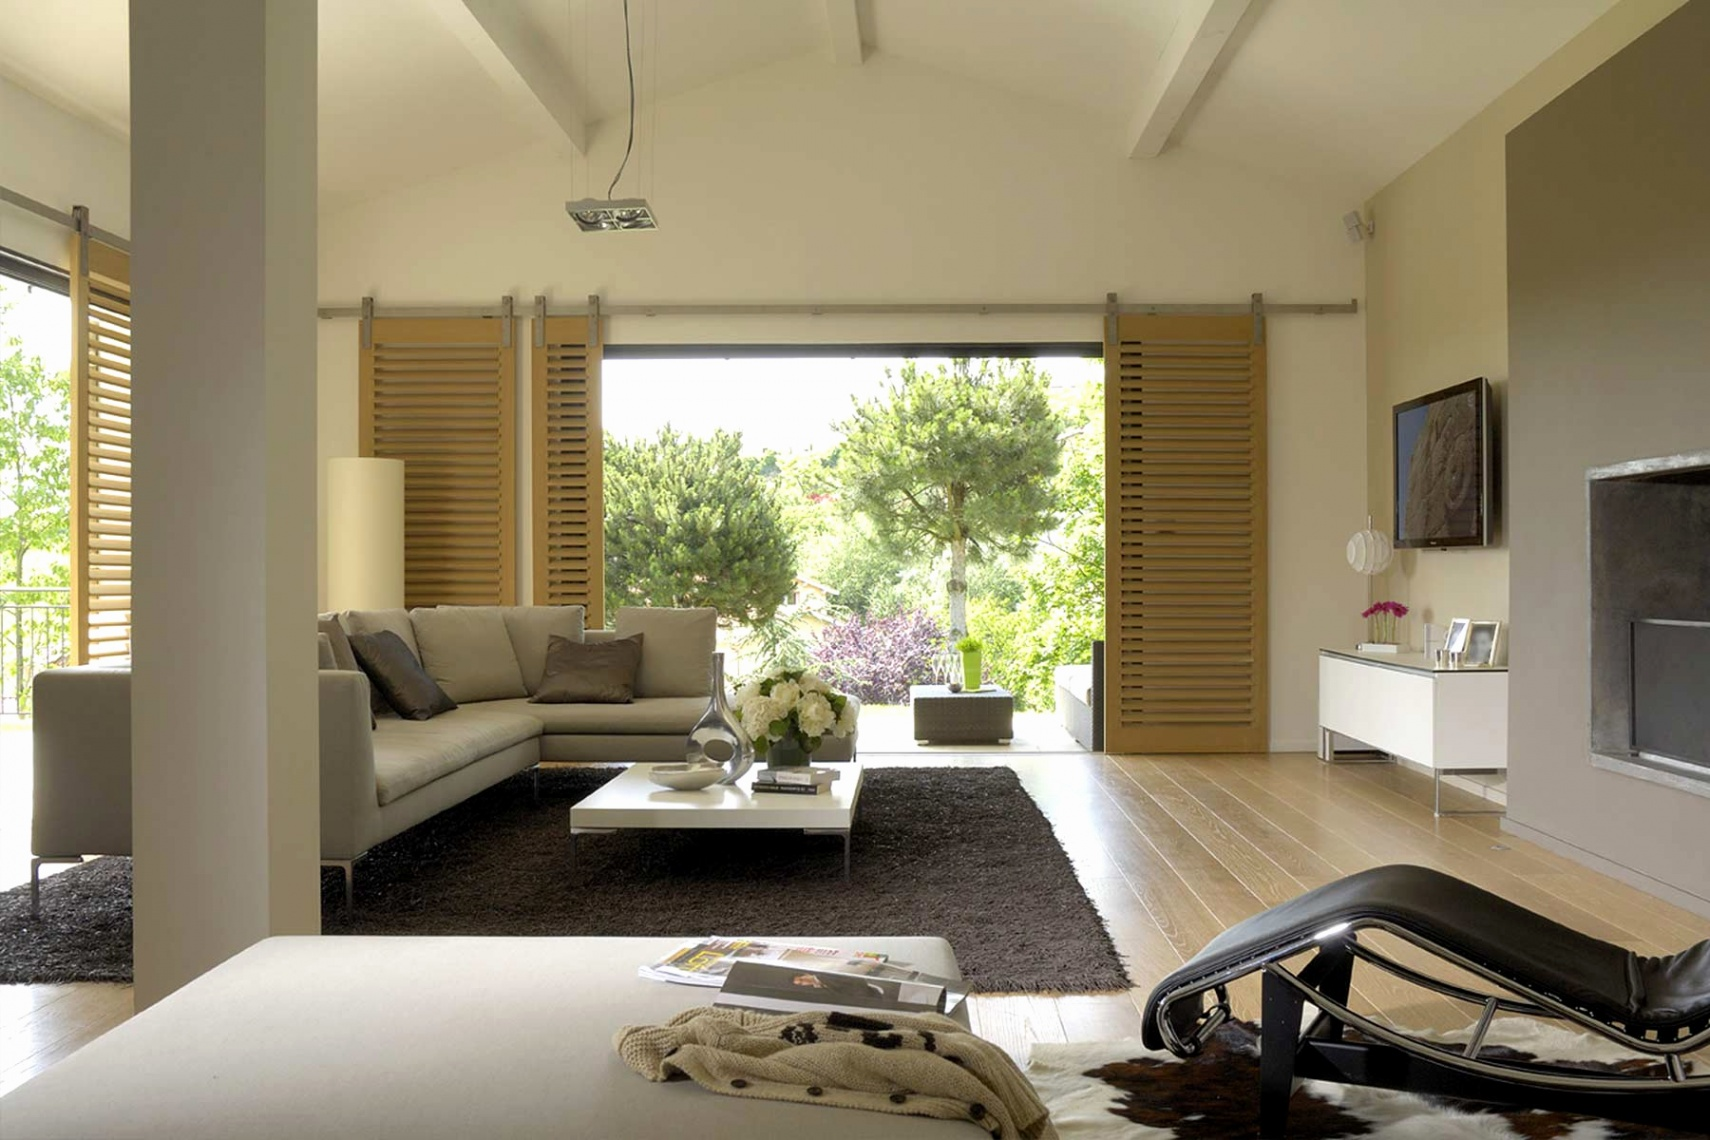 Idee Deco Decoration Maison Moderne Interieur Brillant Idee Deco Interieur